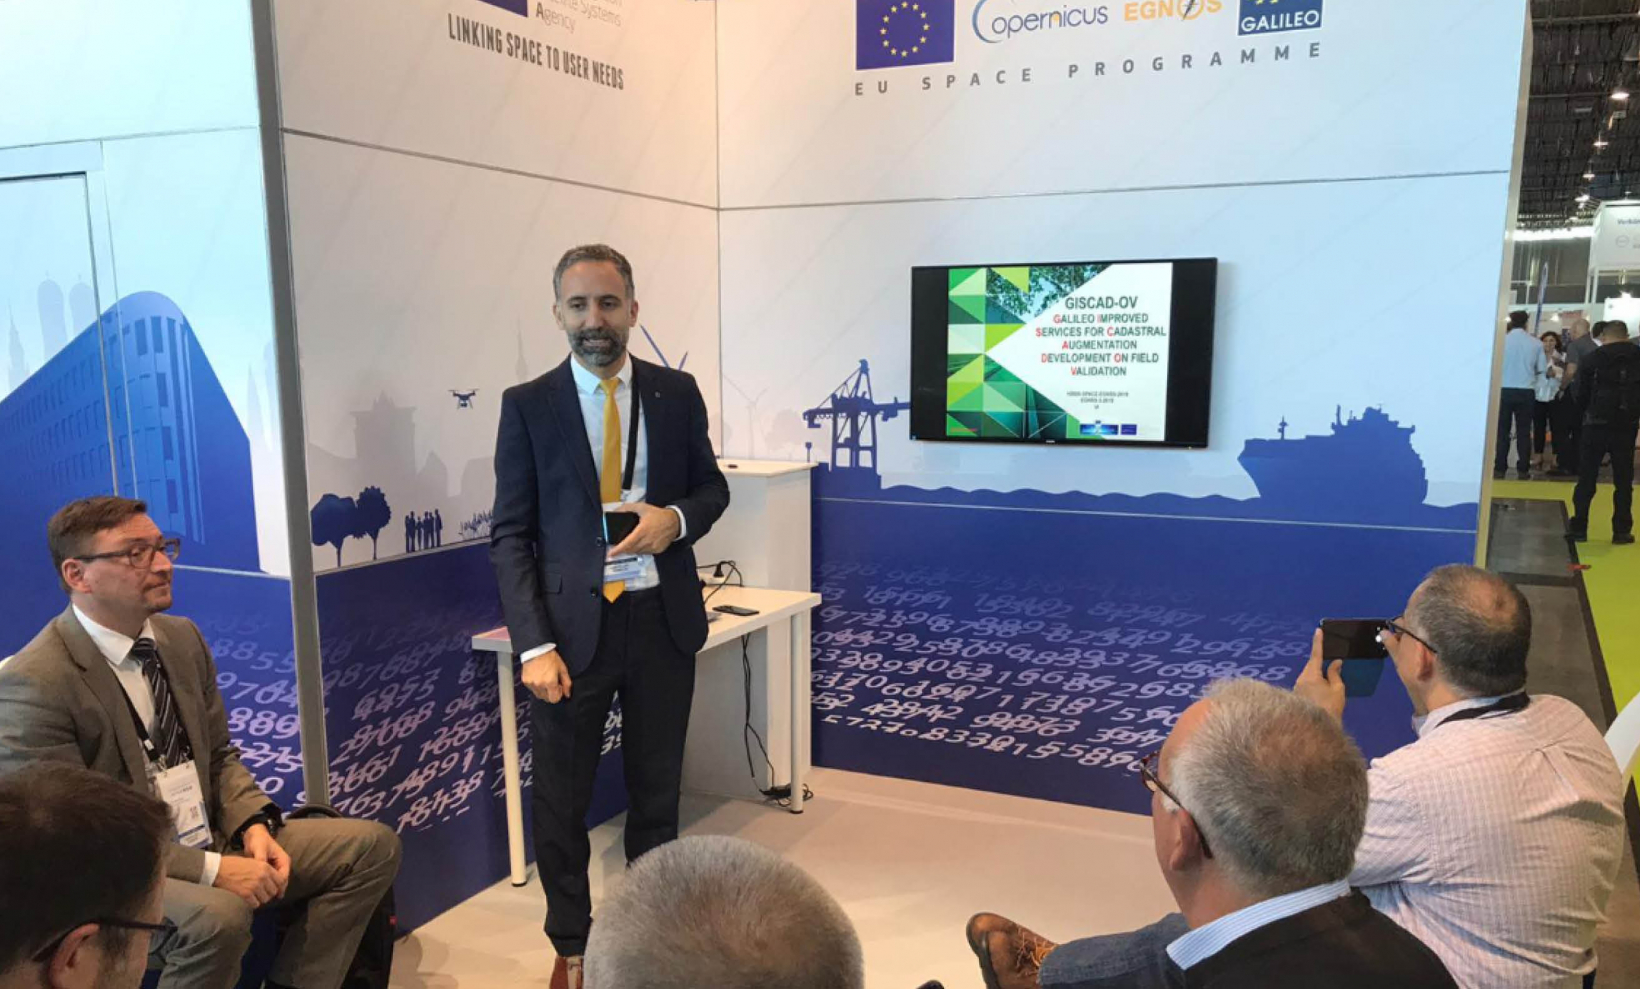 GSA Market Development Innovation Officer Eduard Escalona speaking at the InterGEO Galileo workshop